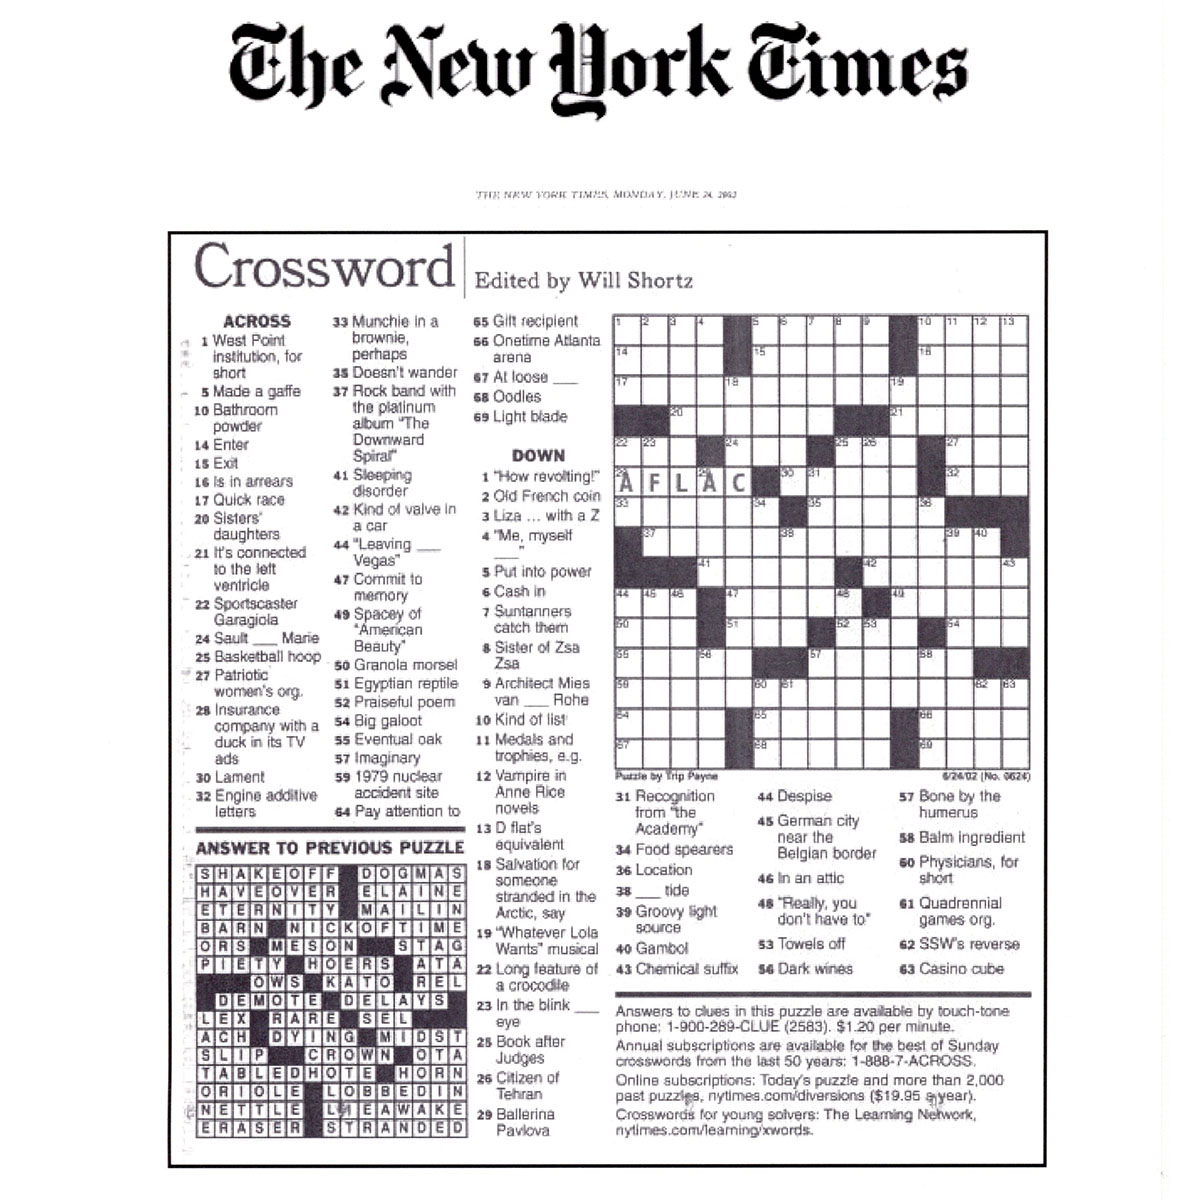 Untitled-1_0004_NY TIMES Crossword 06.24.03.jpg